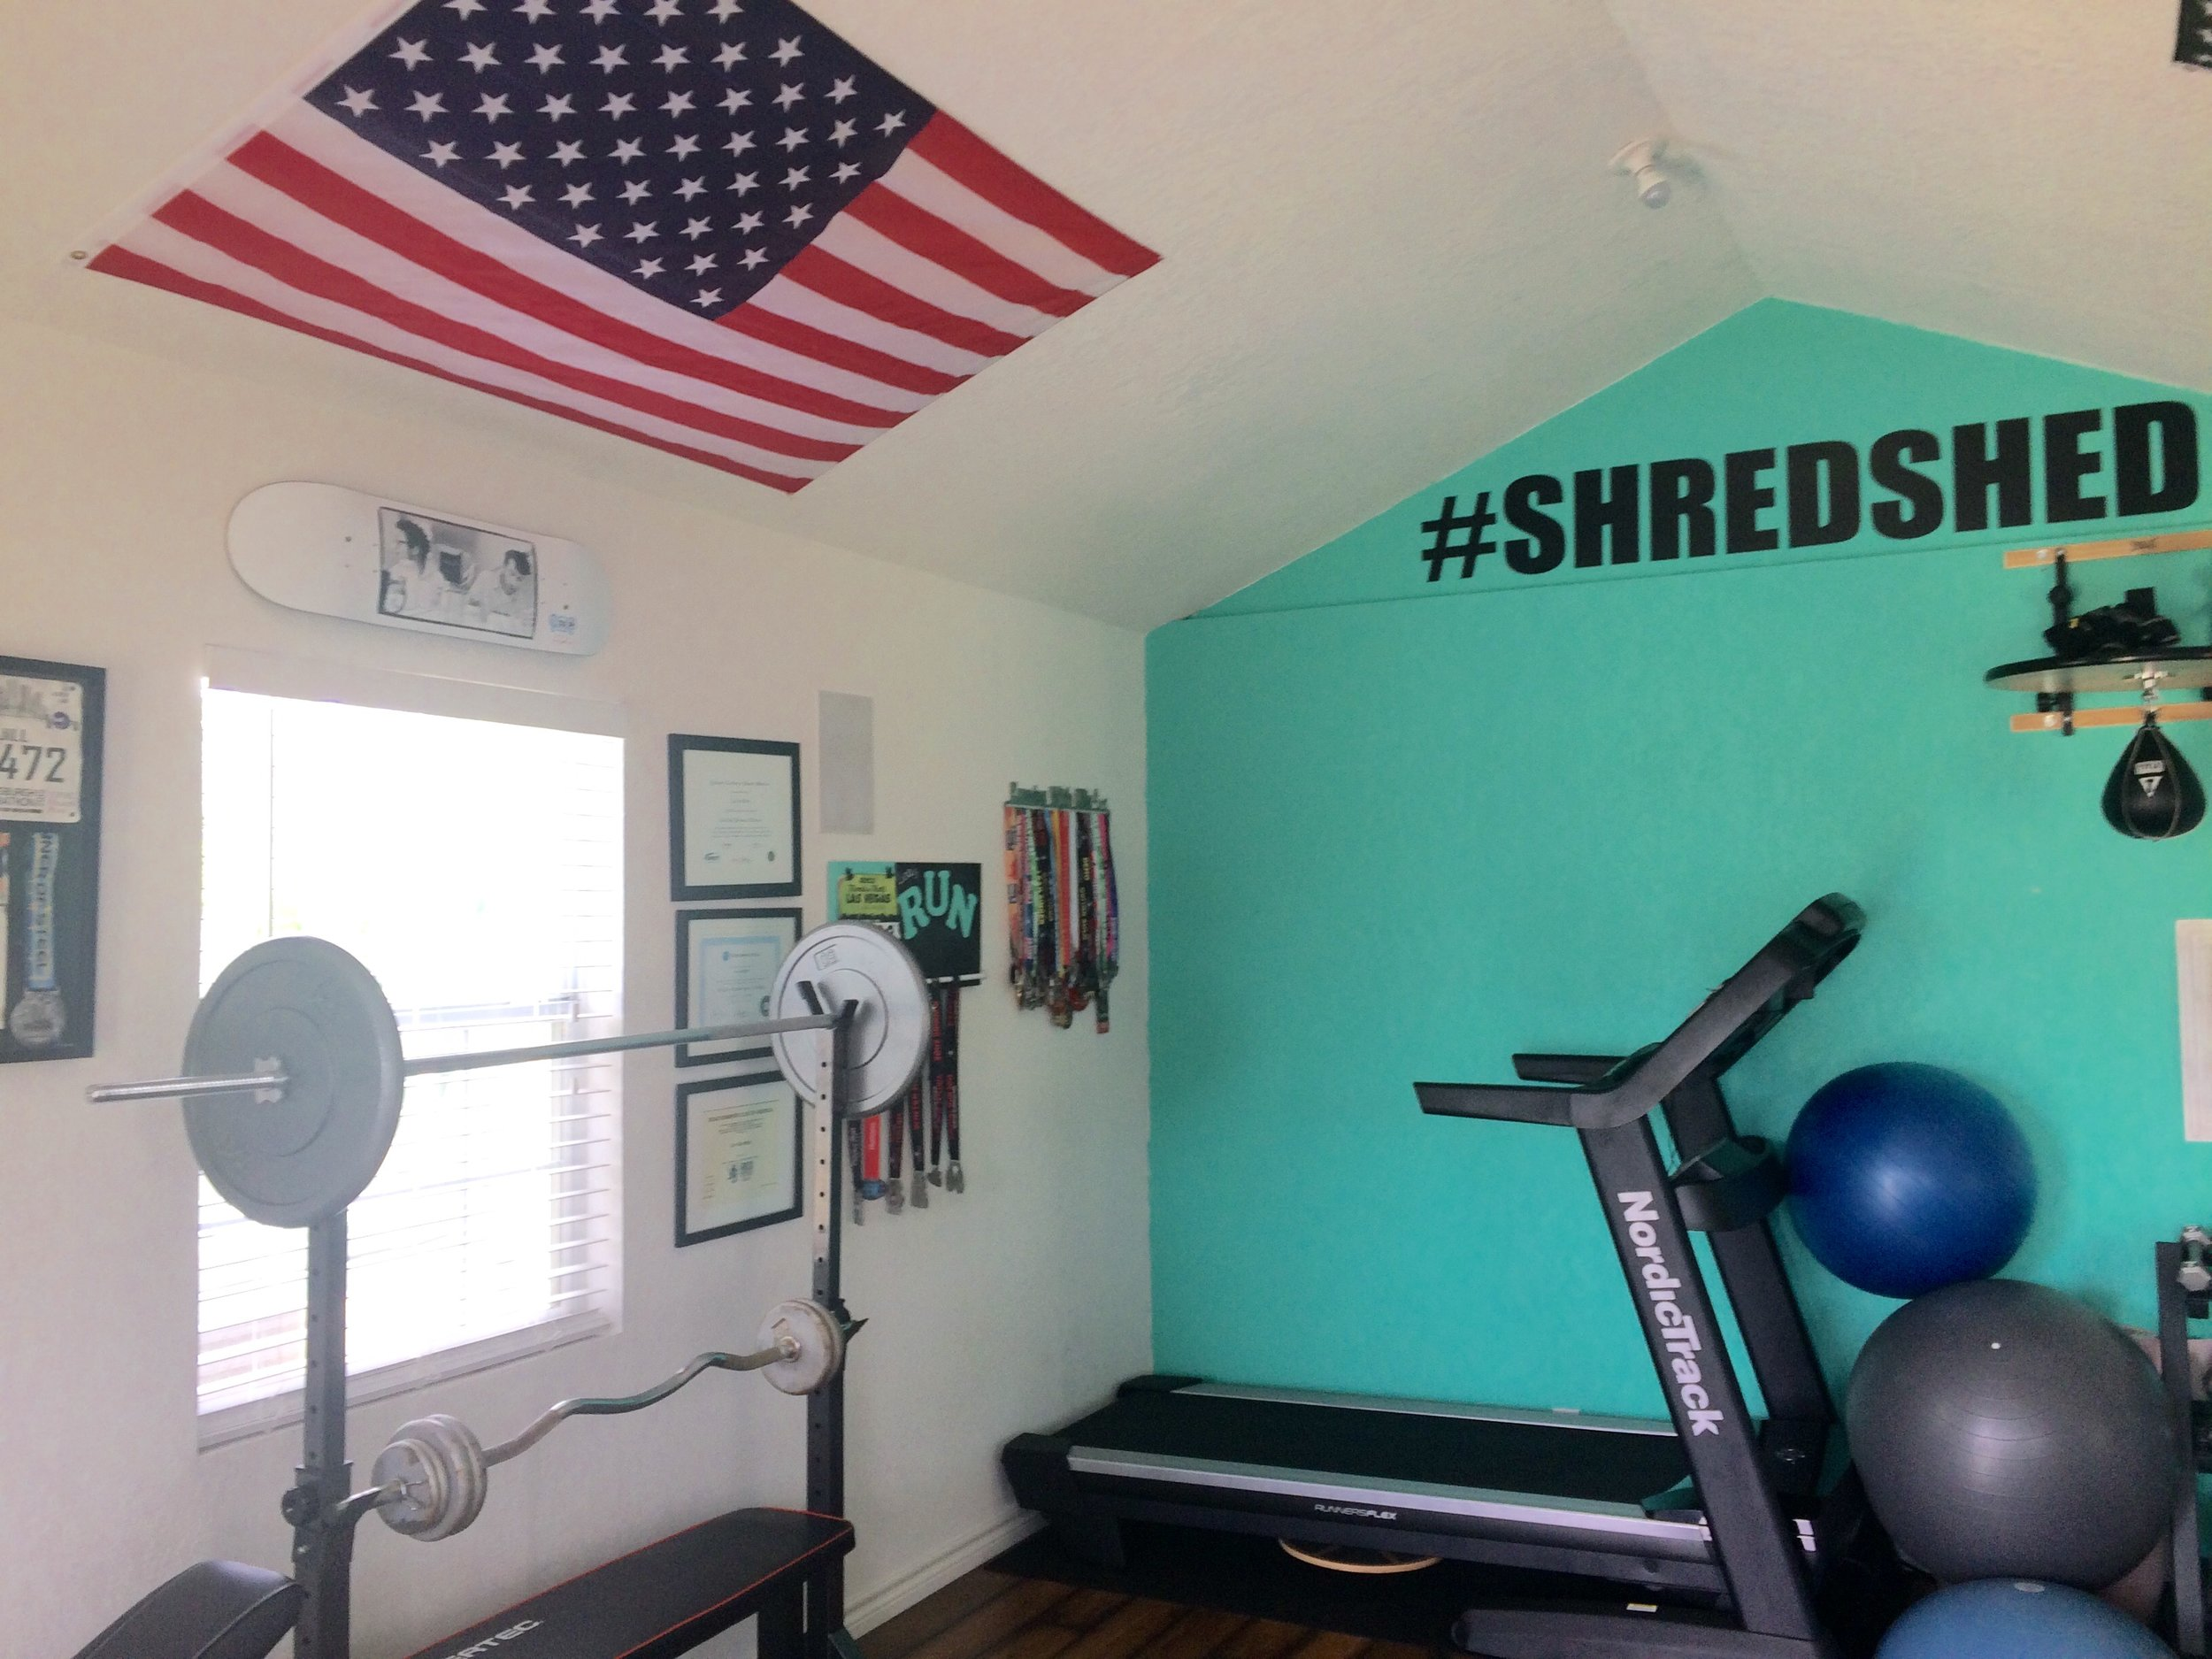 scenes from the  #Shredshed